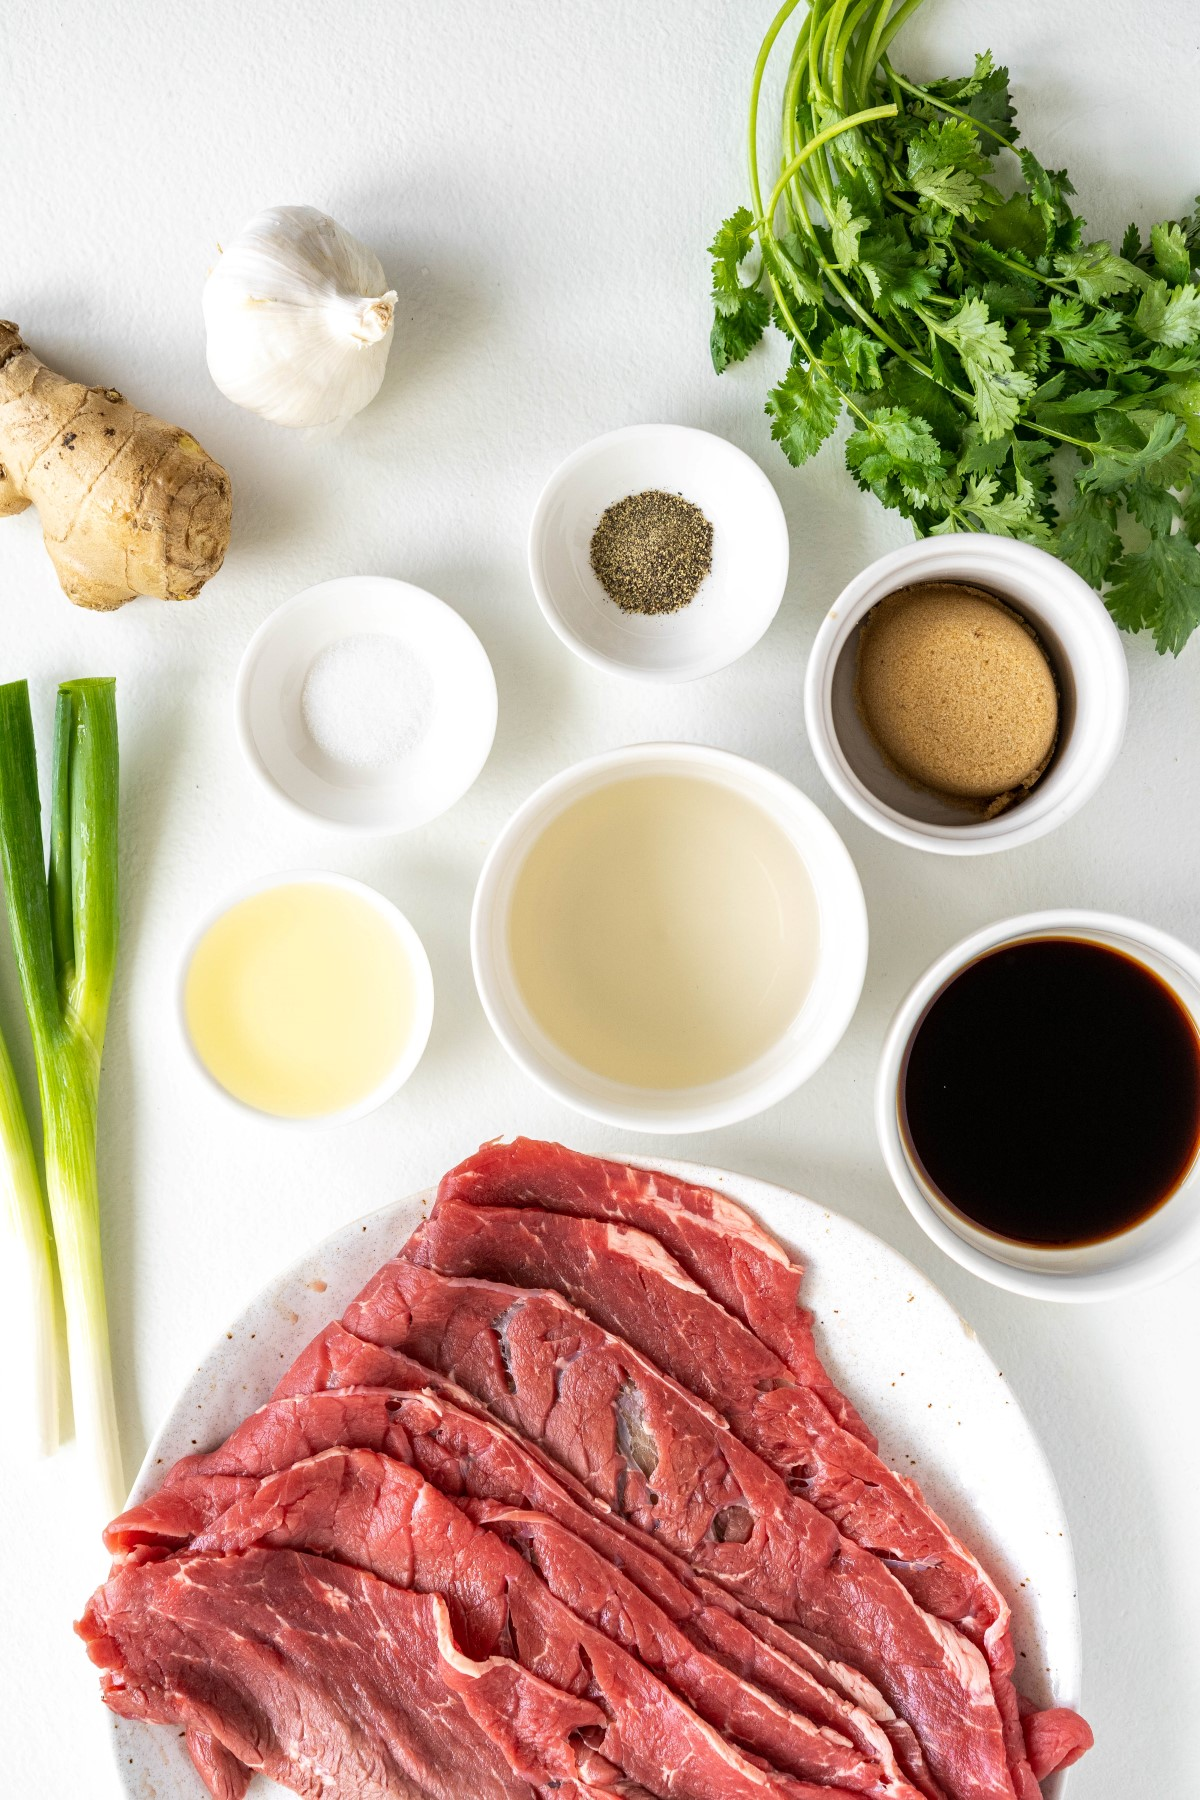 The ingredients for grilled teriyaki beef kabobs in small bowls with the raw beef on a platter